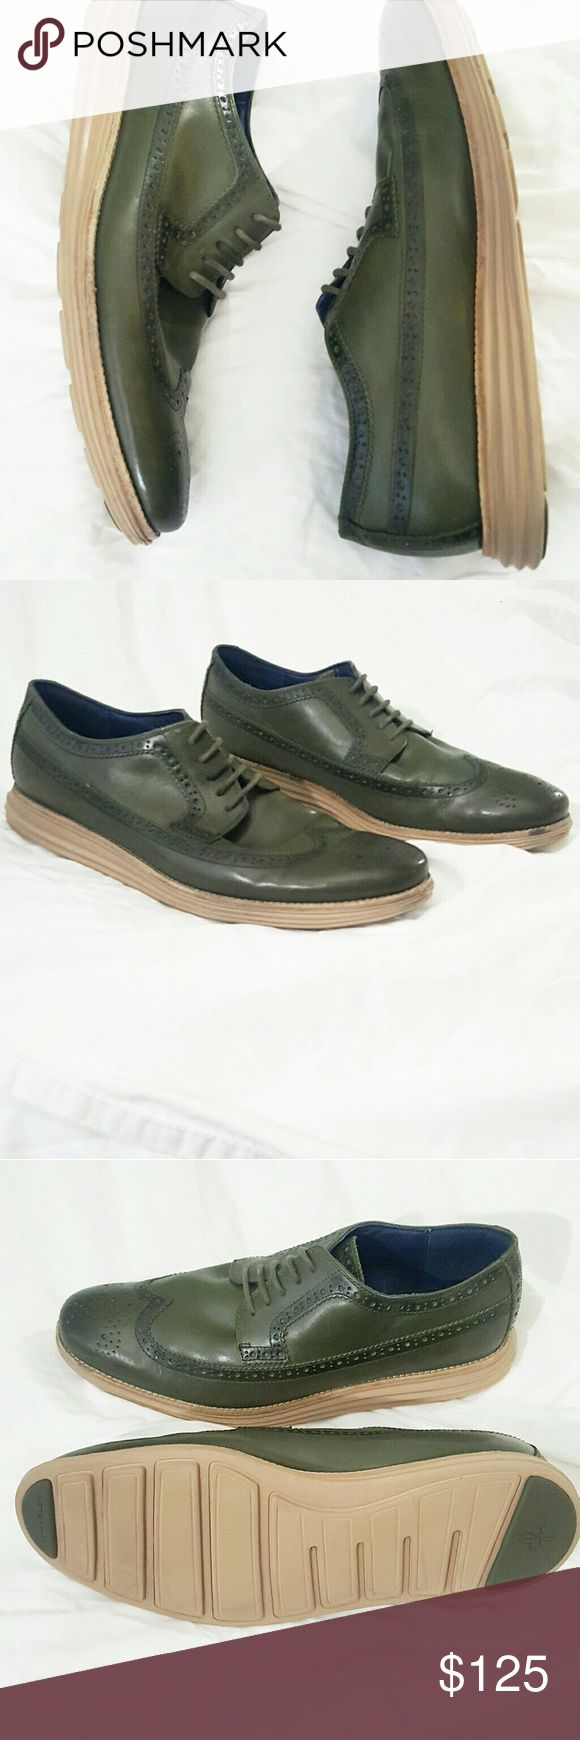 most comfortable dress shoes womens shoes for yourstyles